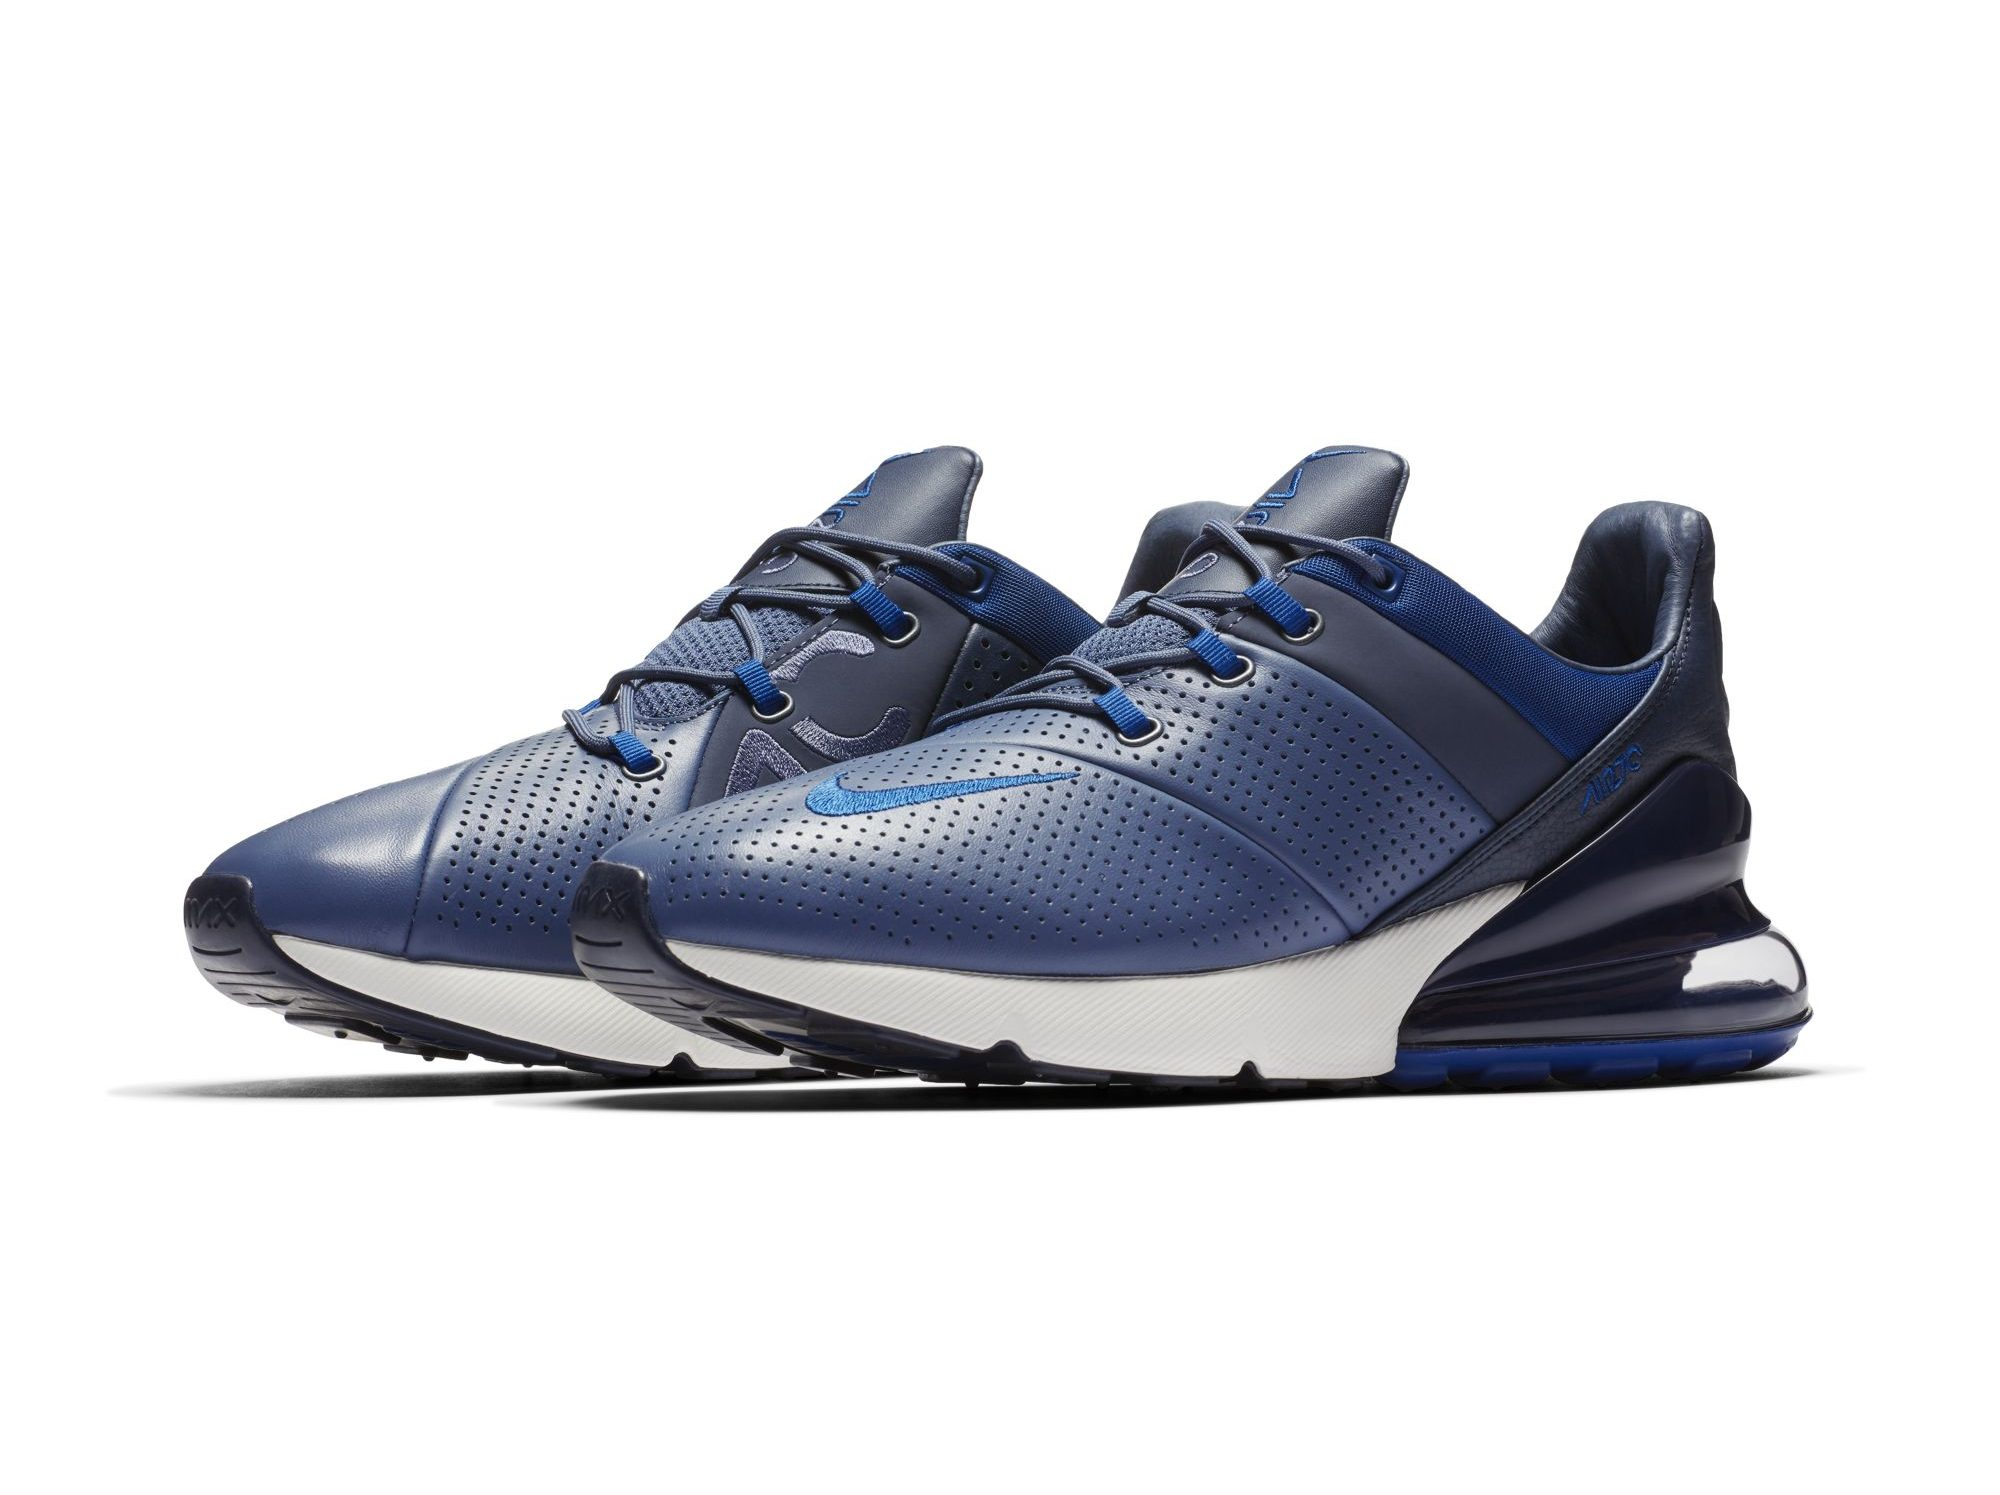 3343544f76 The Nike Air Max 270 Premium Flaunts Perforated Leather and a Low ...